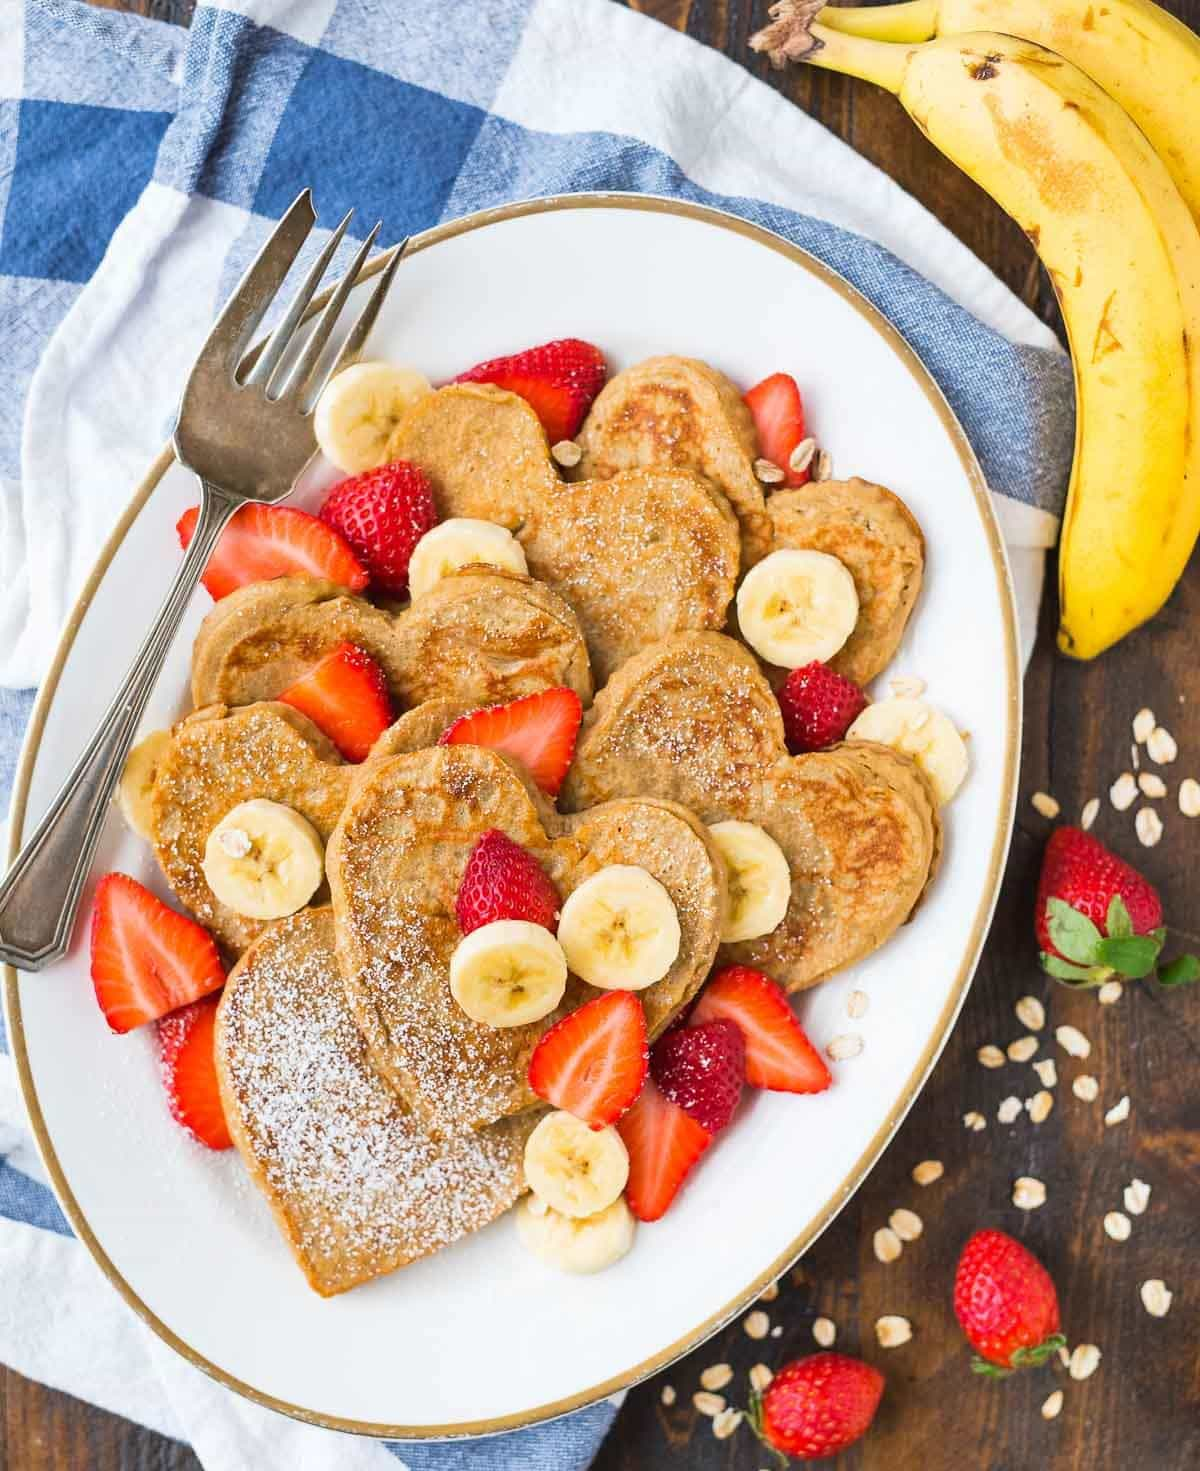 A special, healthy breakfast recipe served on a white platter with fresh fruit